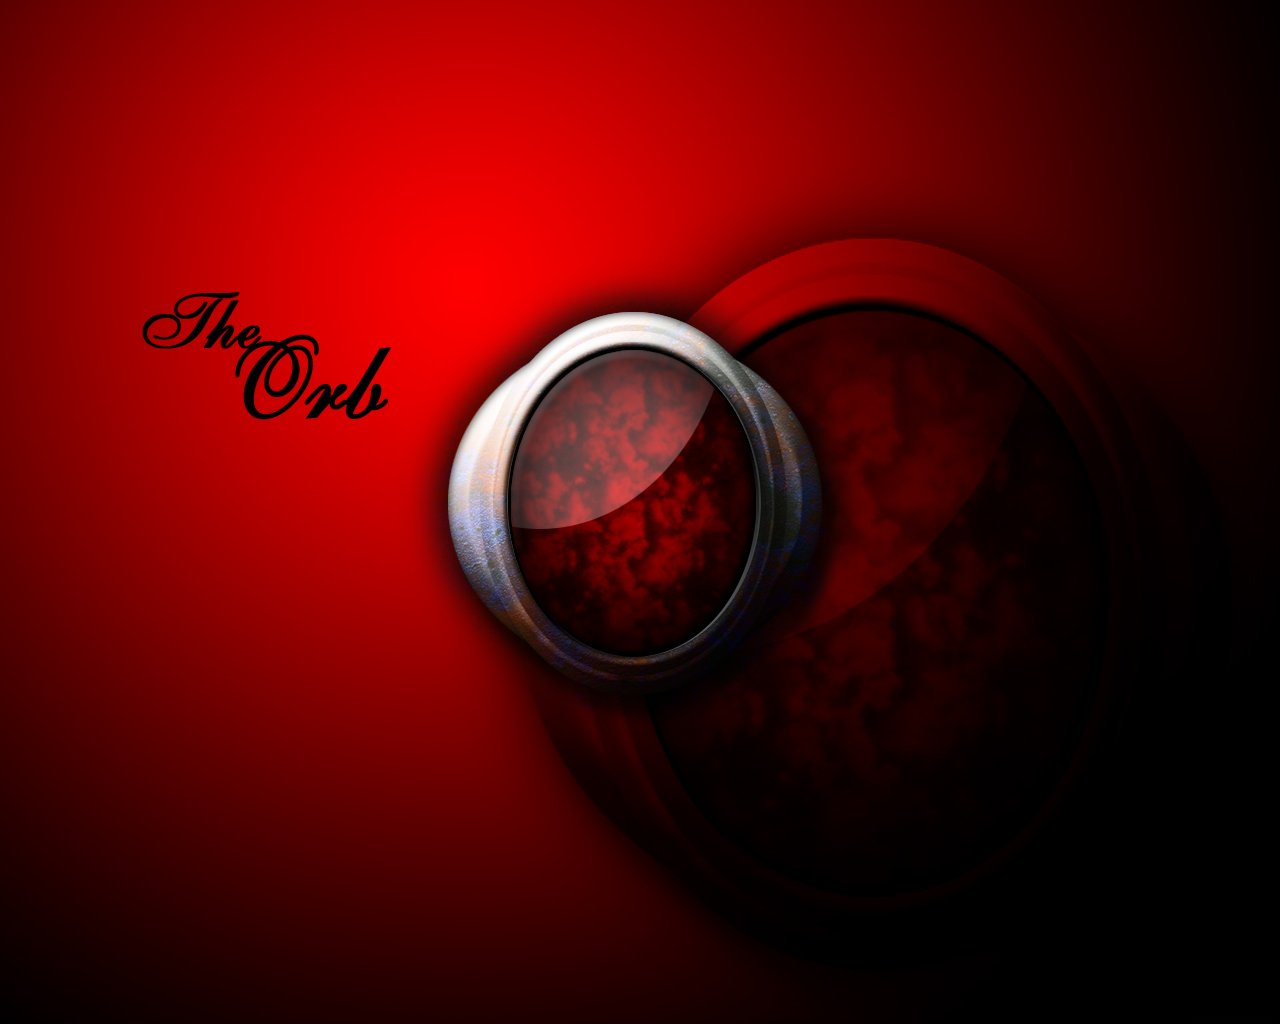 HD Wallpapers The Red Orb